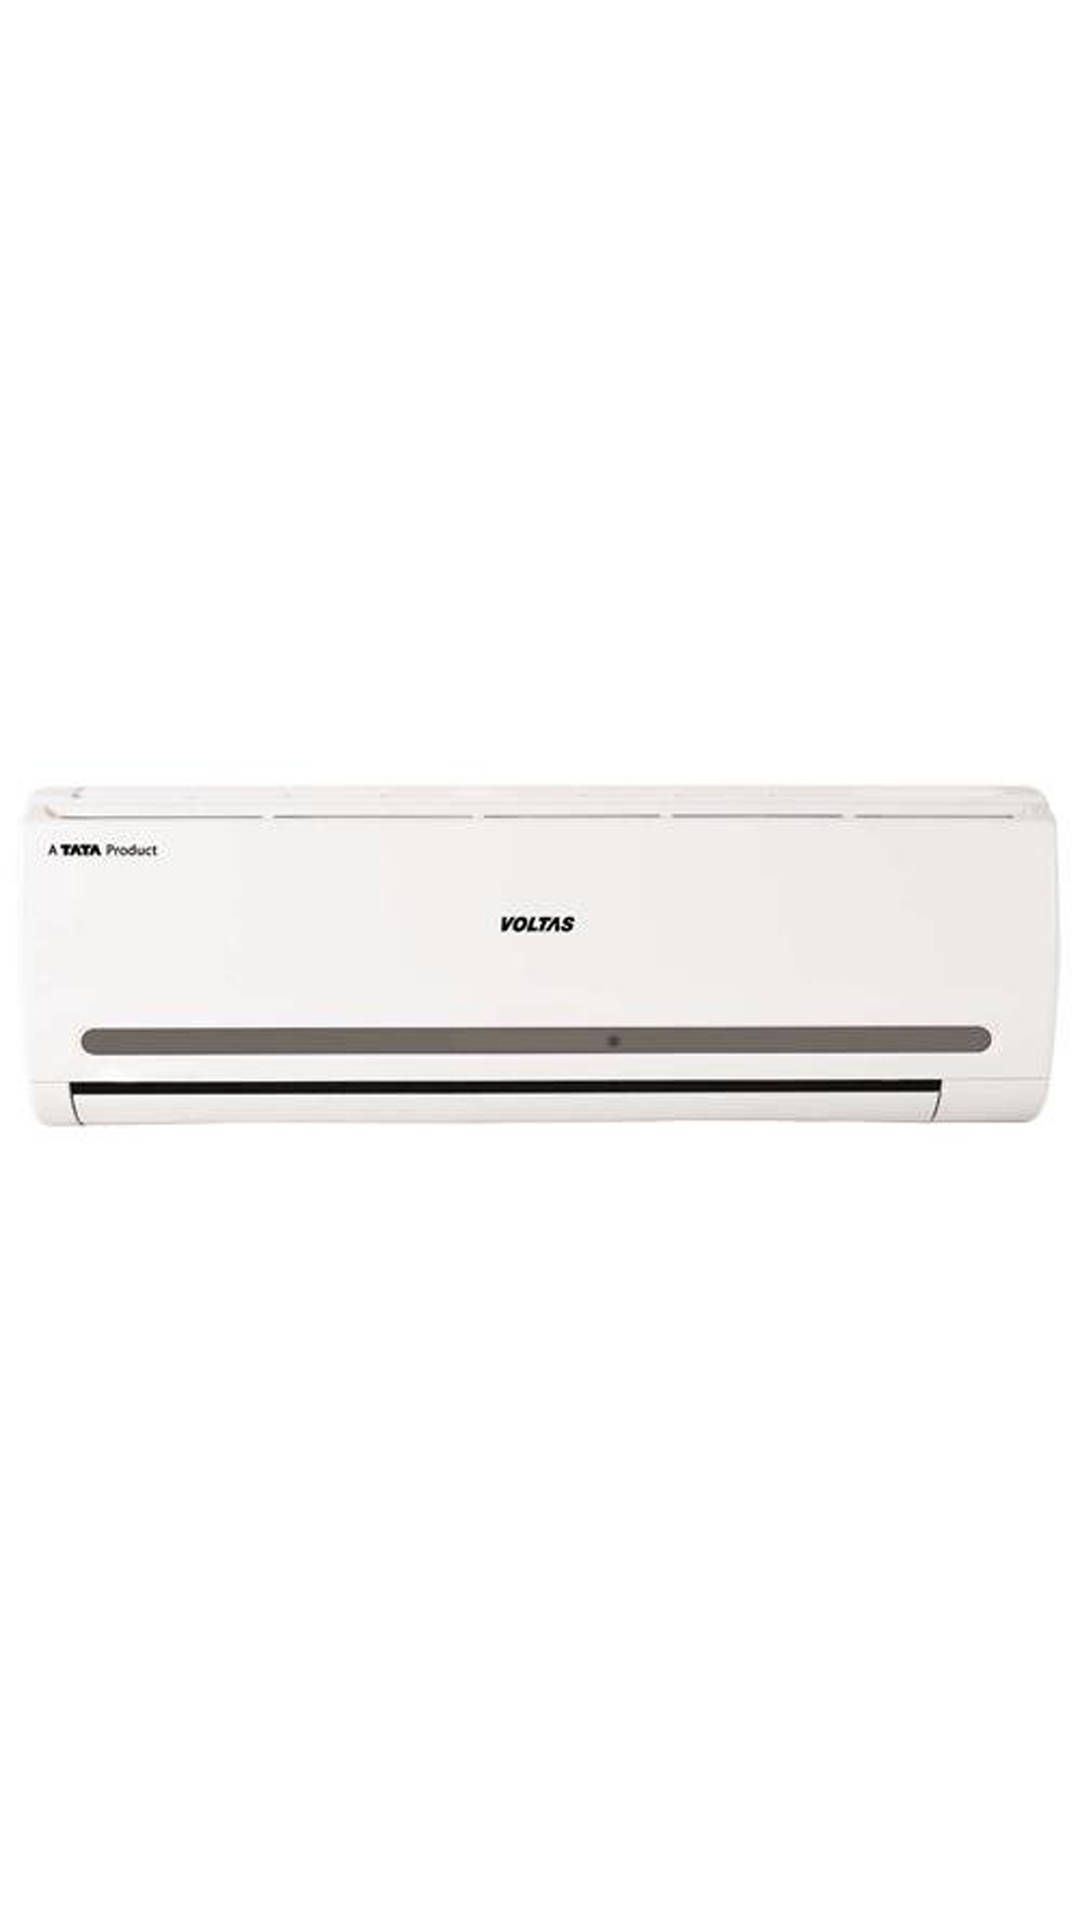 Voltas 1 2 Ton Star 152 Cx Split Air Conditioner Voltas Is A Popular Name When It Comes To Ac S And This C Air Conditioner Prices Installation Things To Come